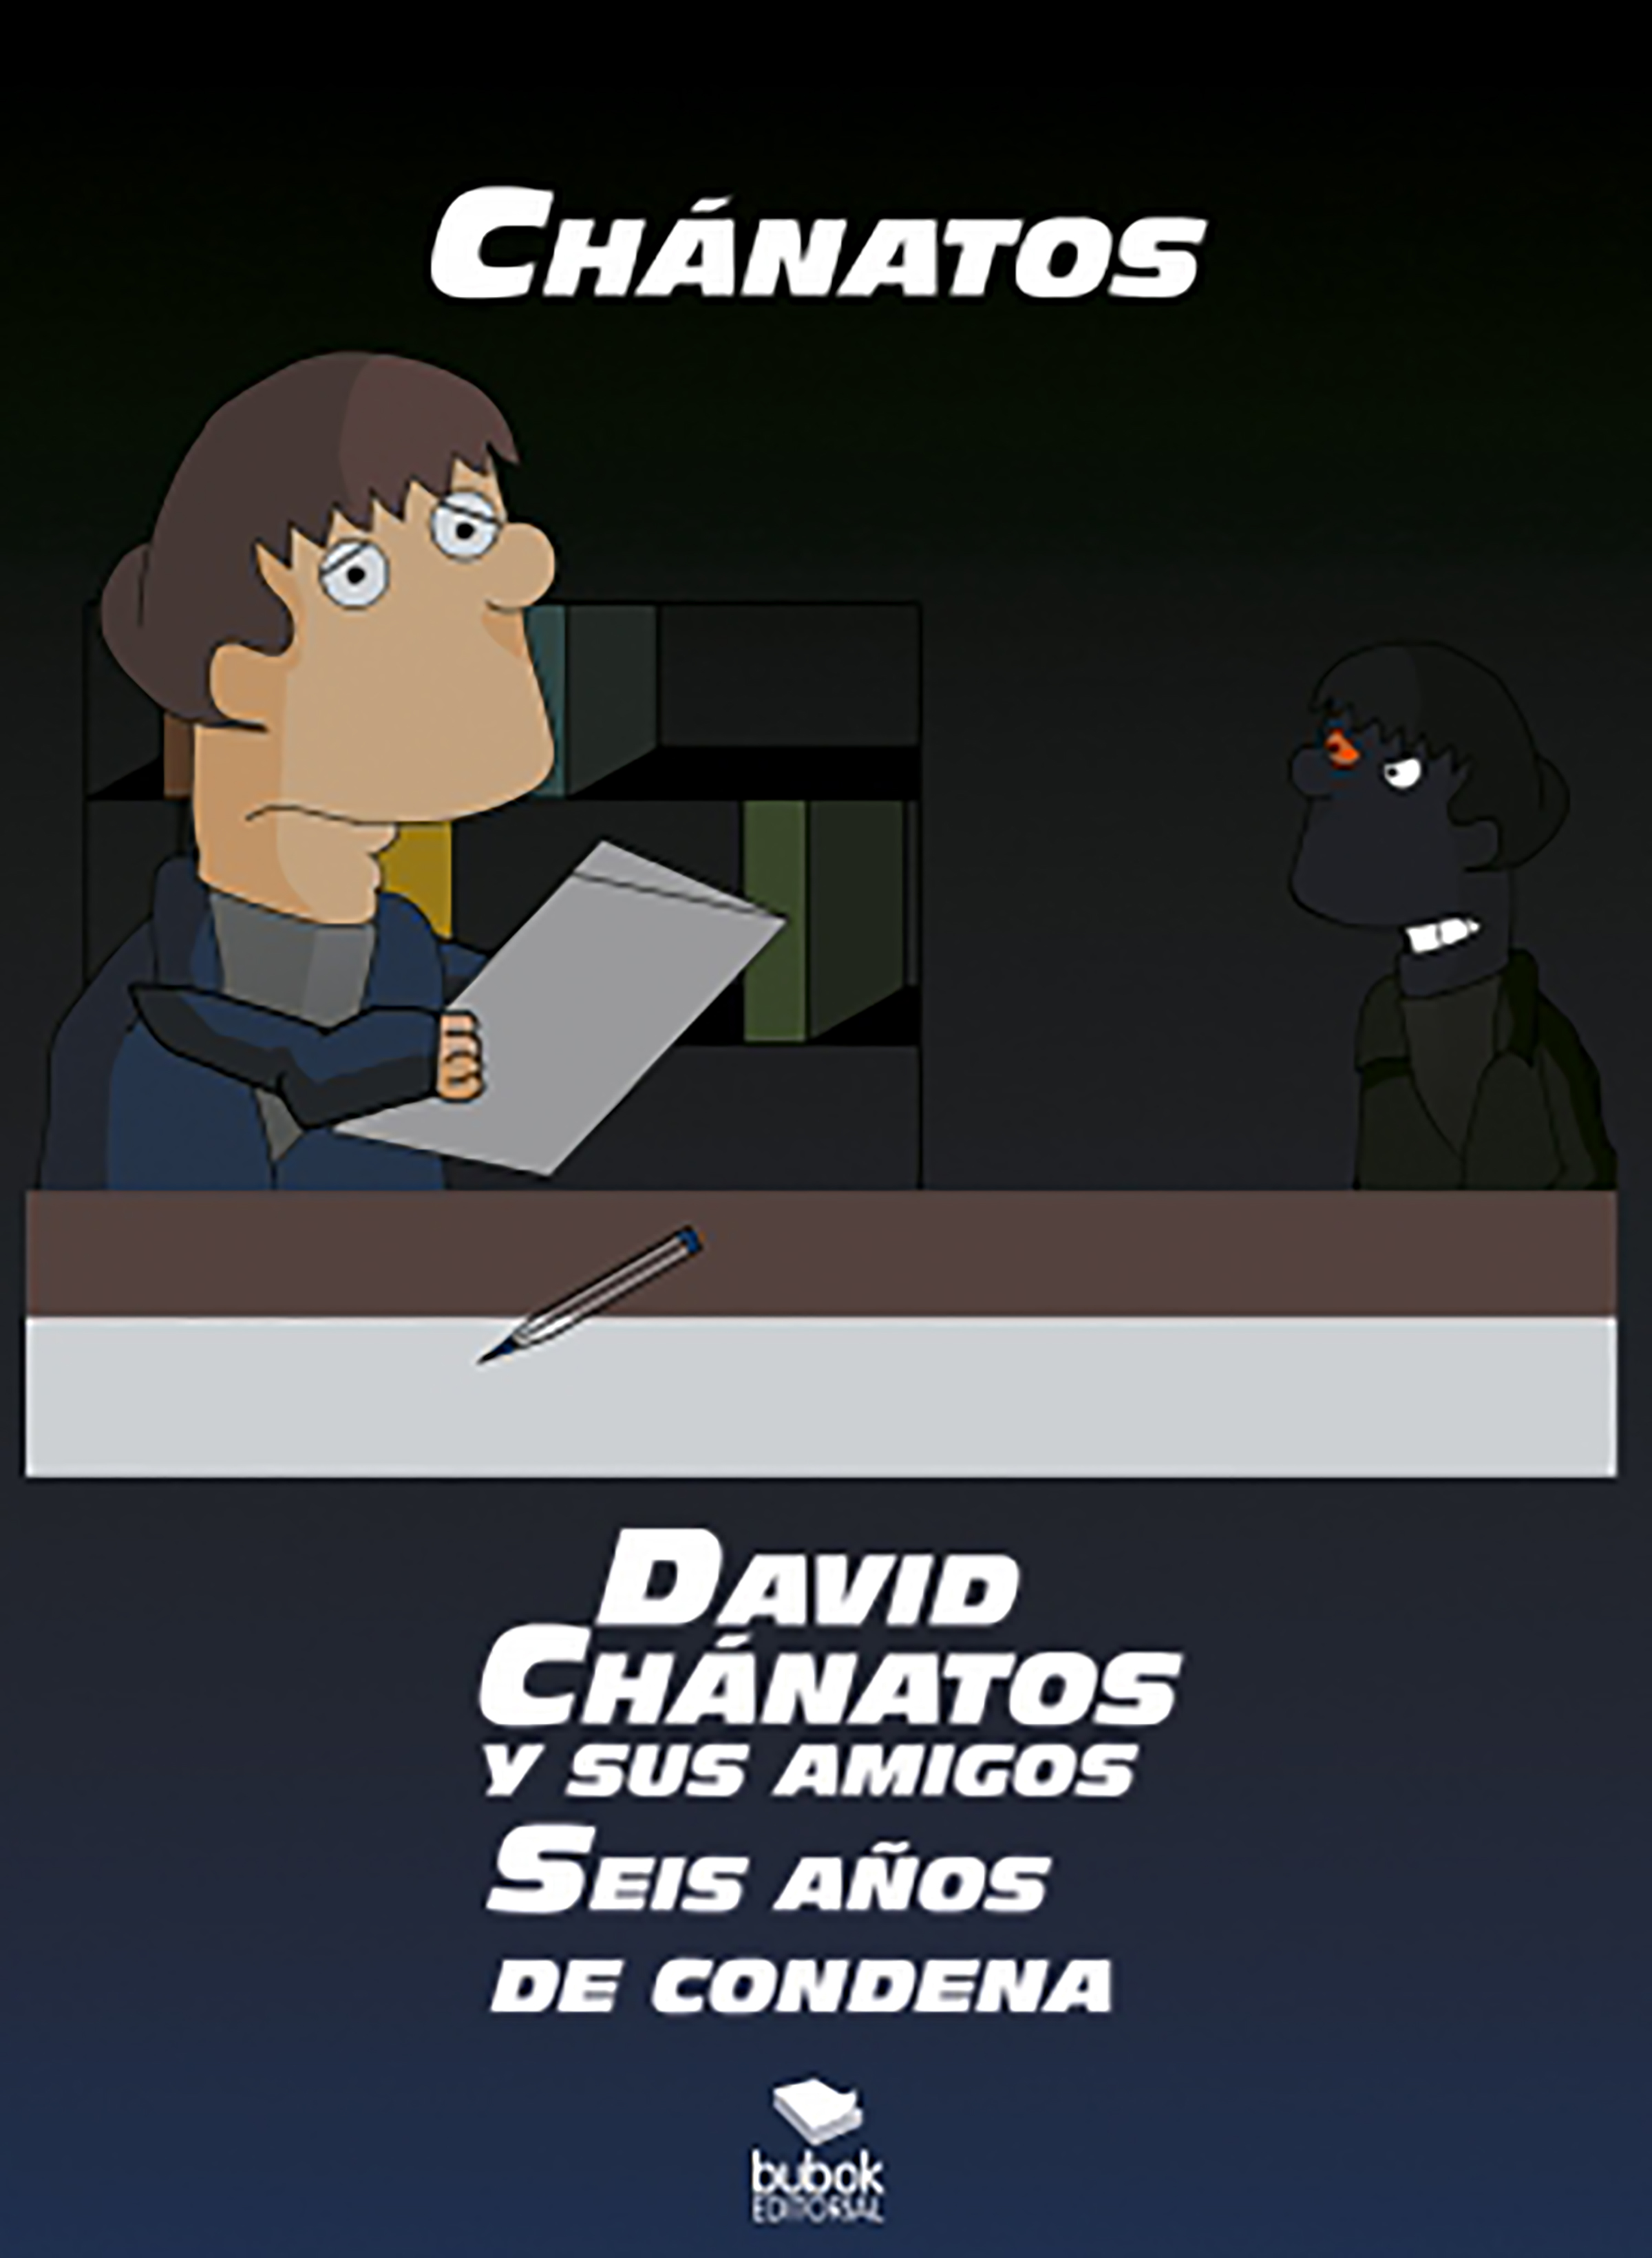 DAVID CHÁNATOS Y SUS AMIGOS